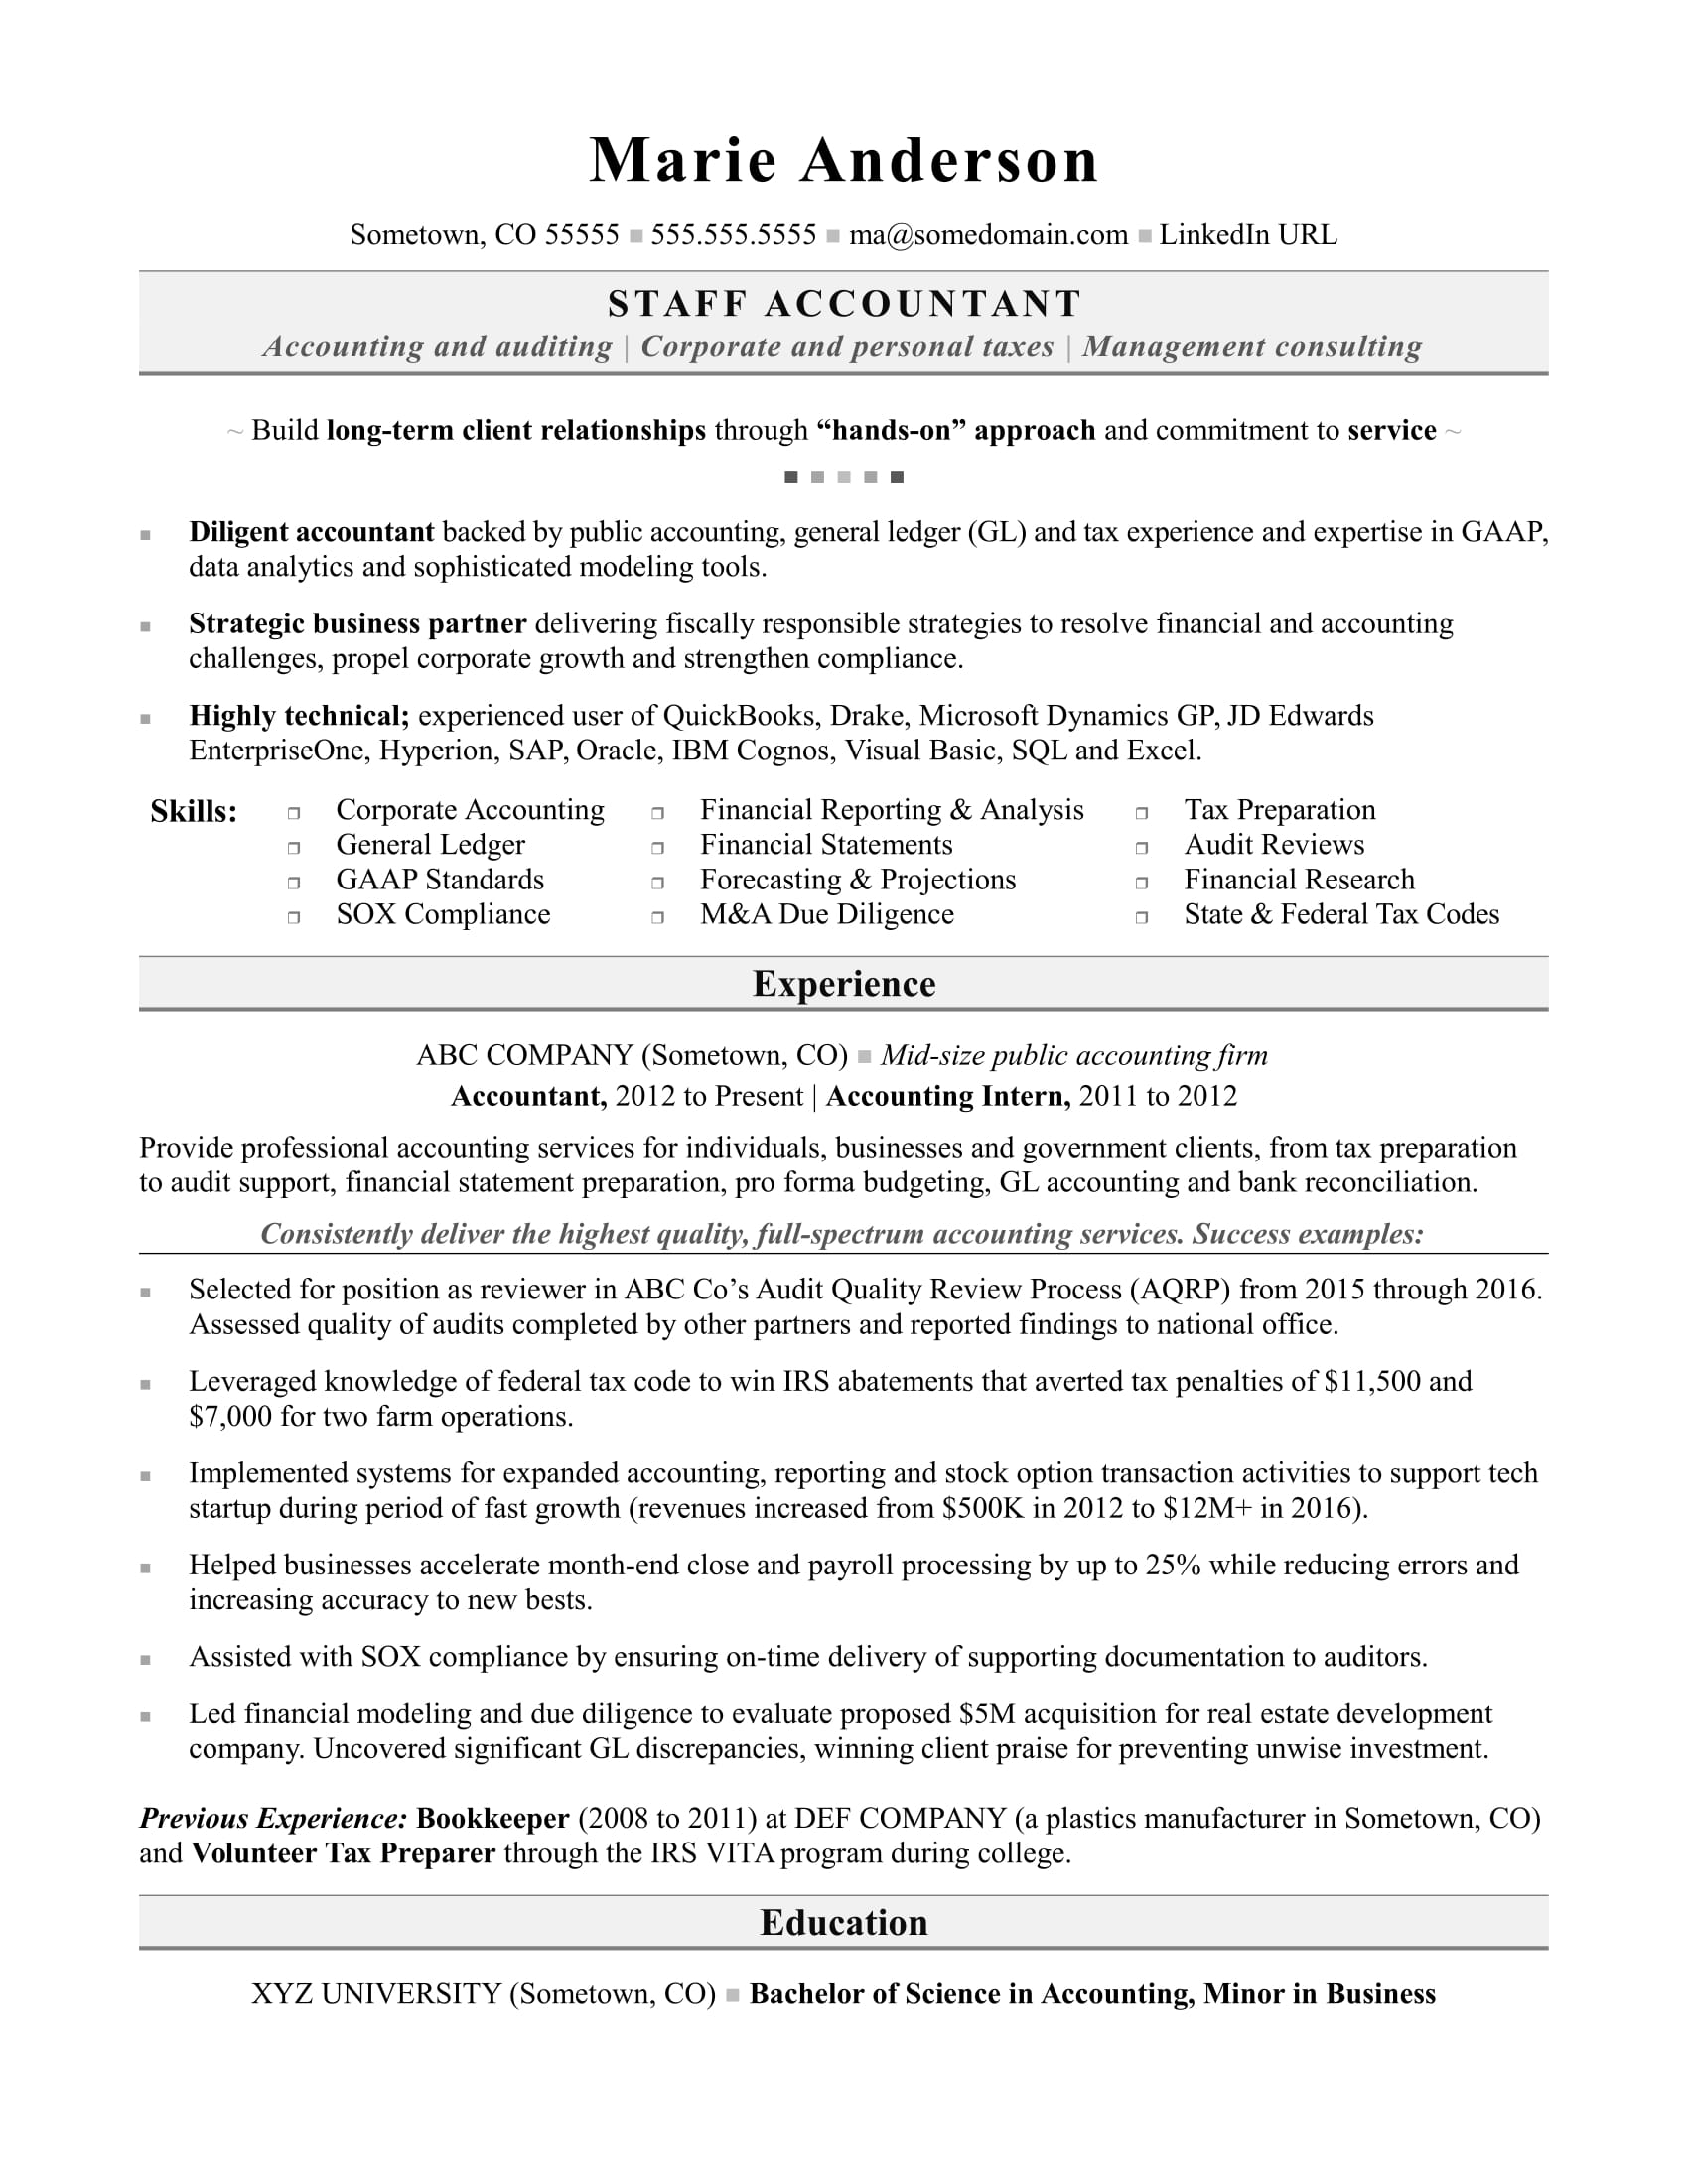 accounting resume sample monster skills and abilities for accountant high school job Resume Skills And Abilities For Accounting Resume